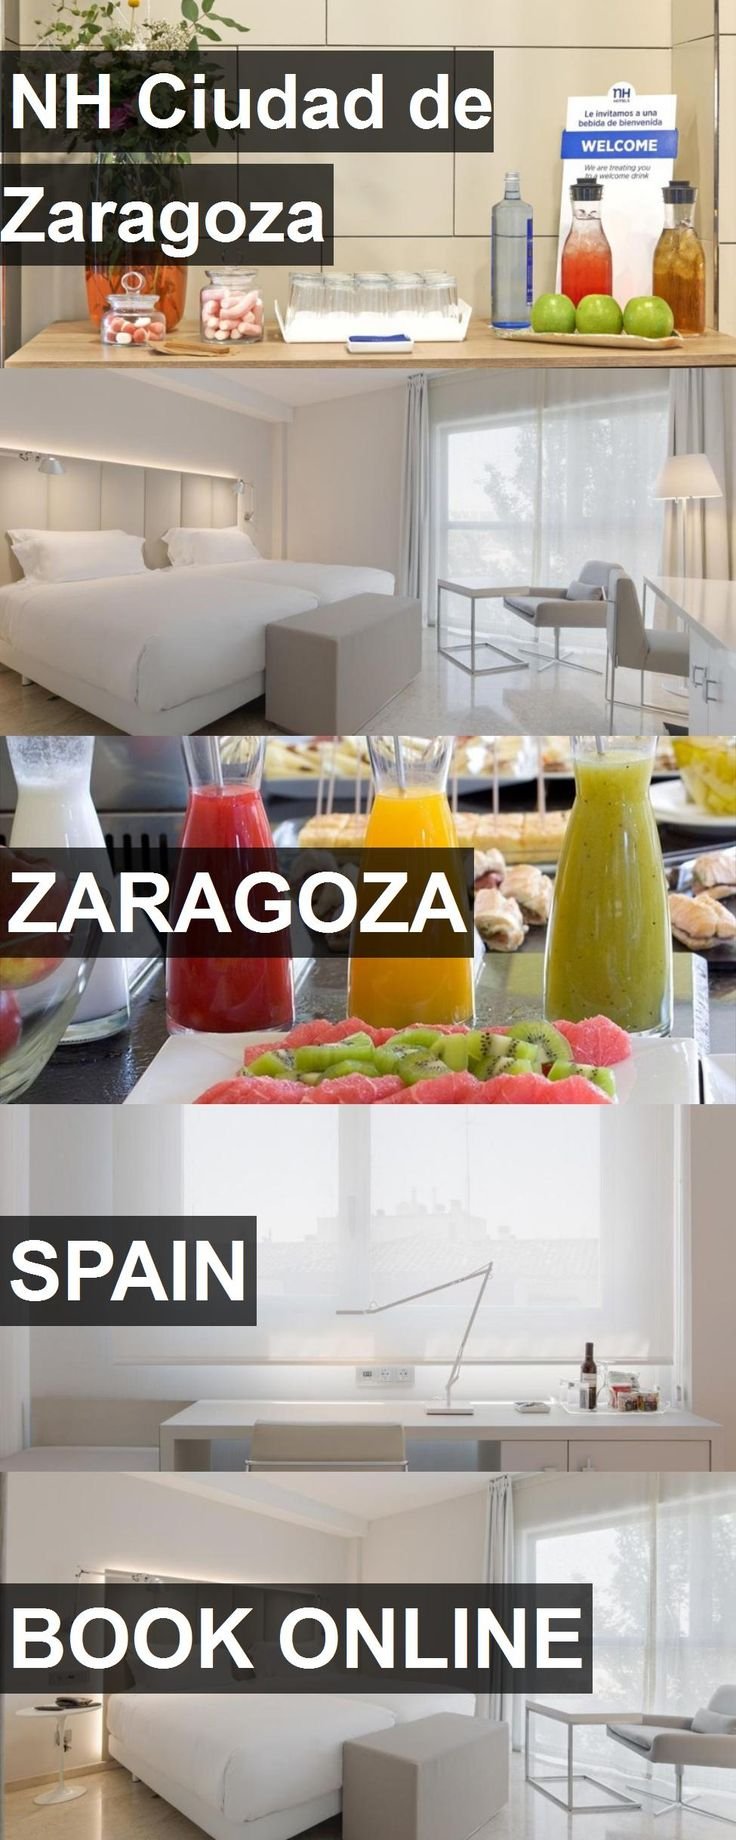 Hotel NH Ciudad de Zaragoza in Zaragoza, Spain. For more information, photos, reviews and best prices please follow the link. #Spain #Zaragoza #travel #vacation #hotel